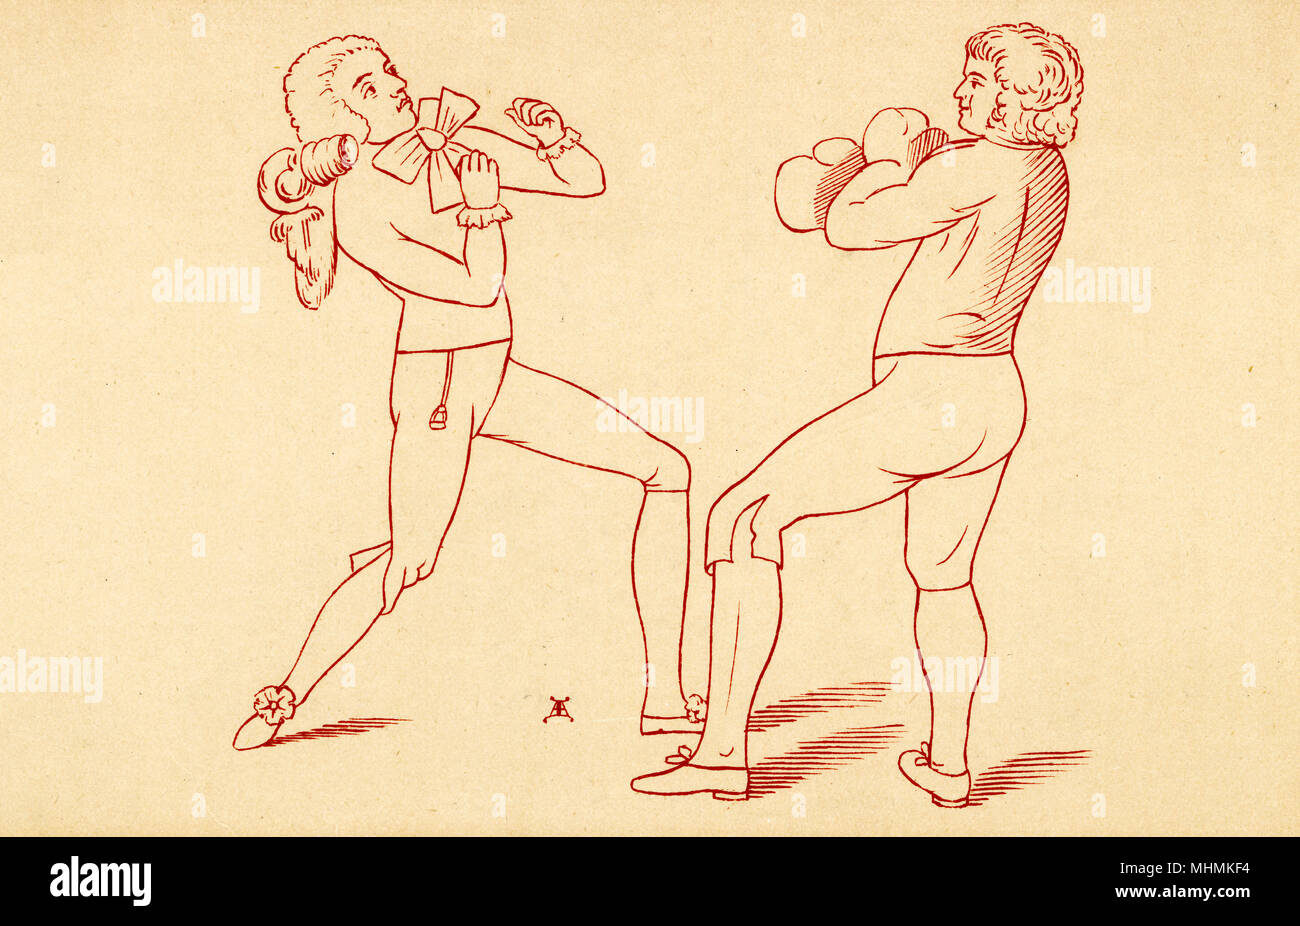 'Boxing made easy, or Humphreys giving a lesson'       Date: 1788 - Stock Image